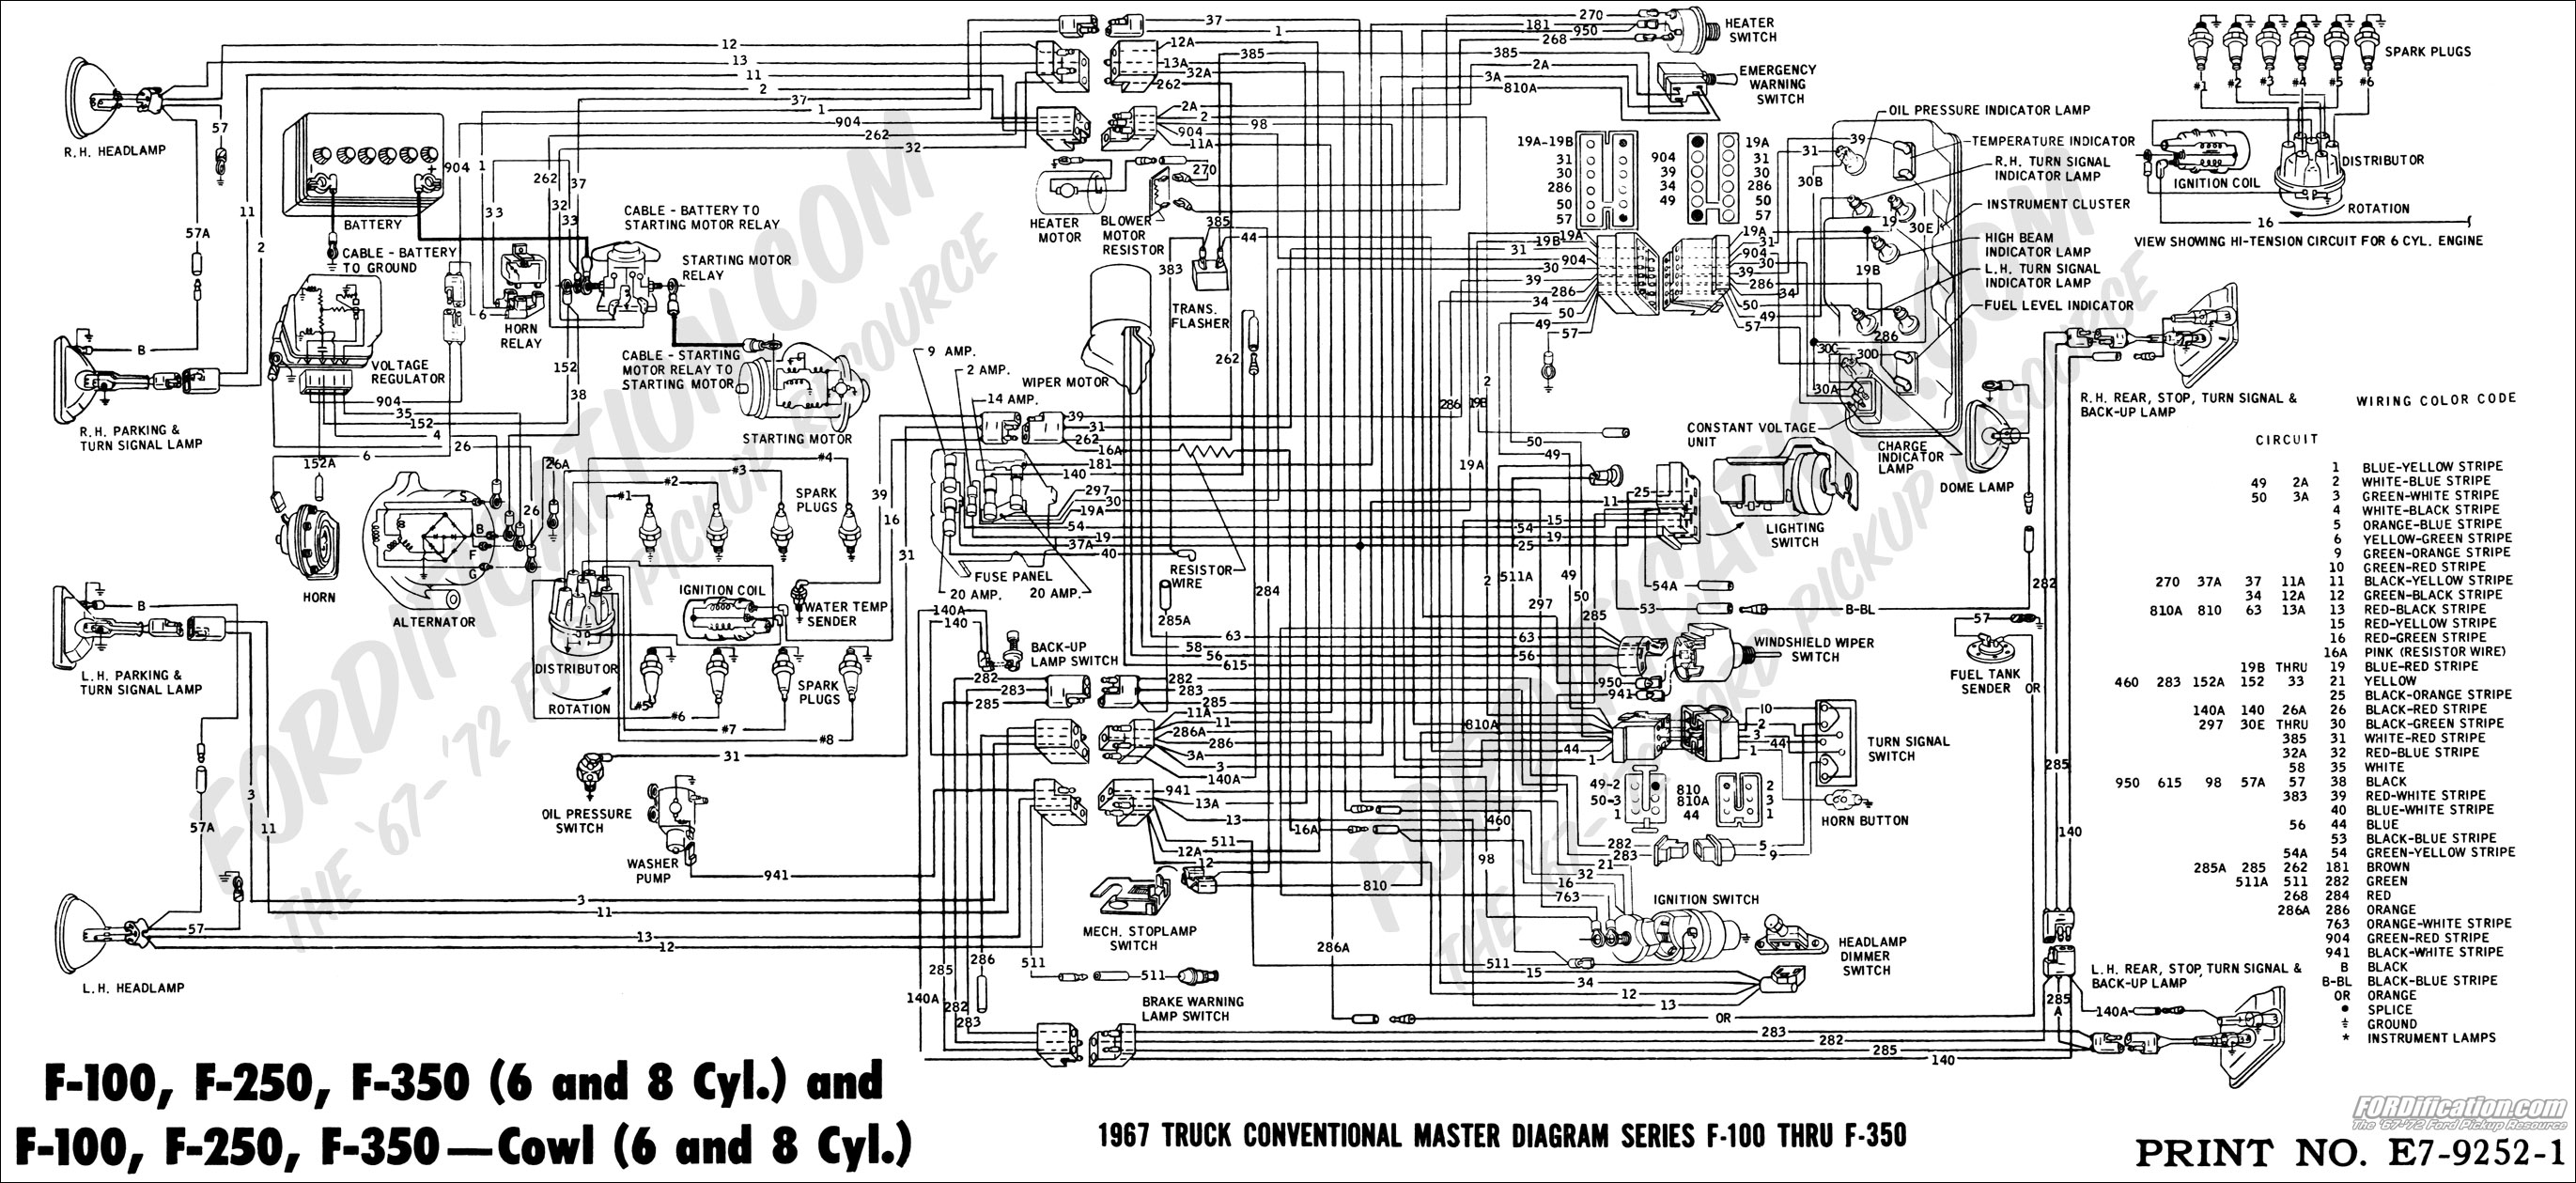 67masterdiagram 93 ford f 350 trailer wiring diagram wiring diagram simonand 2007 ford f150 wiring diagram at crackthecode.co